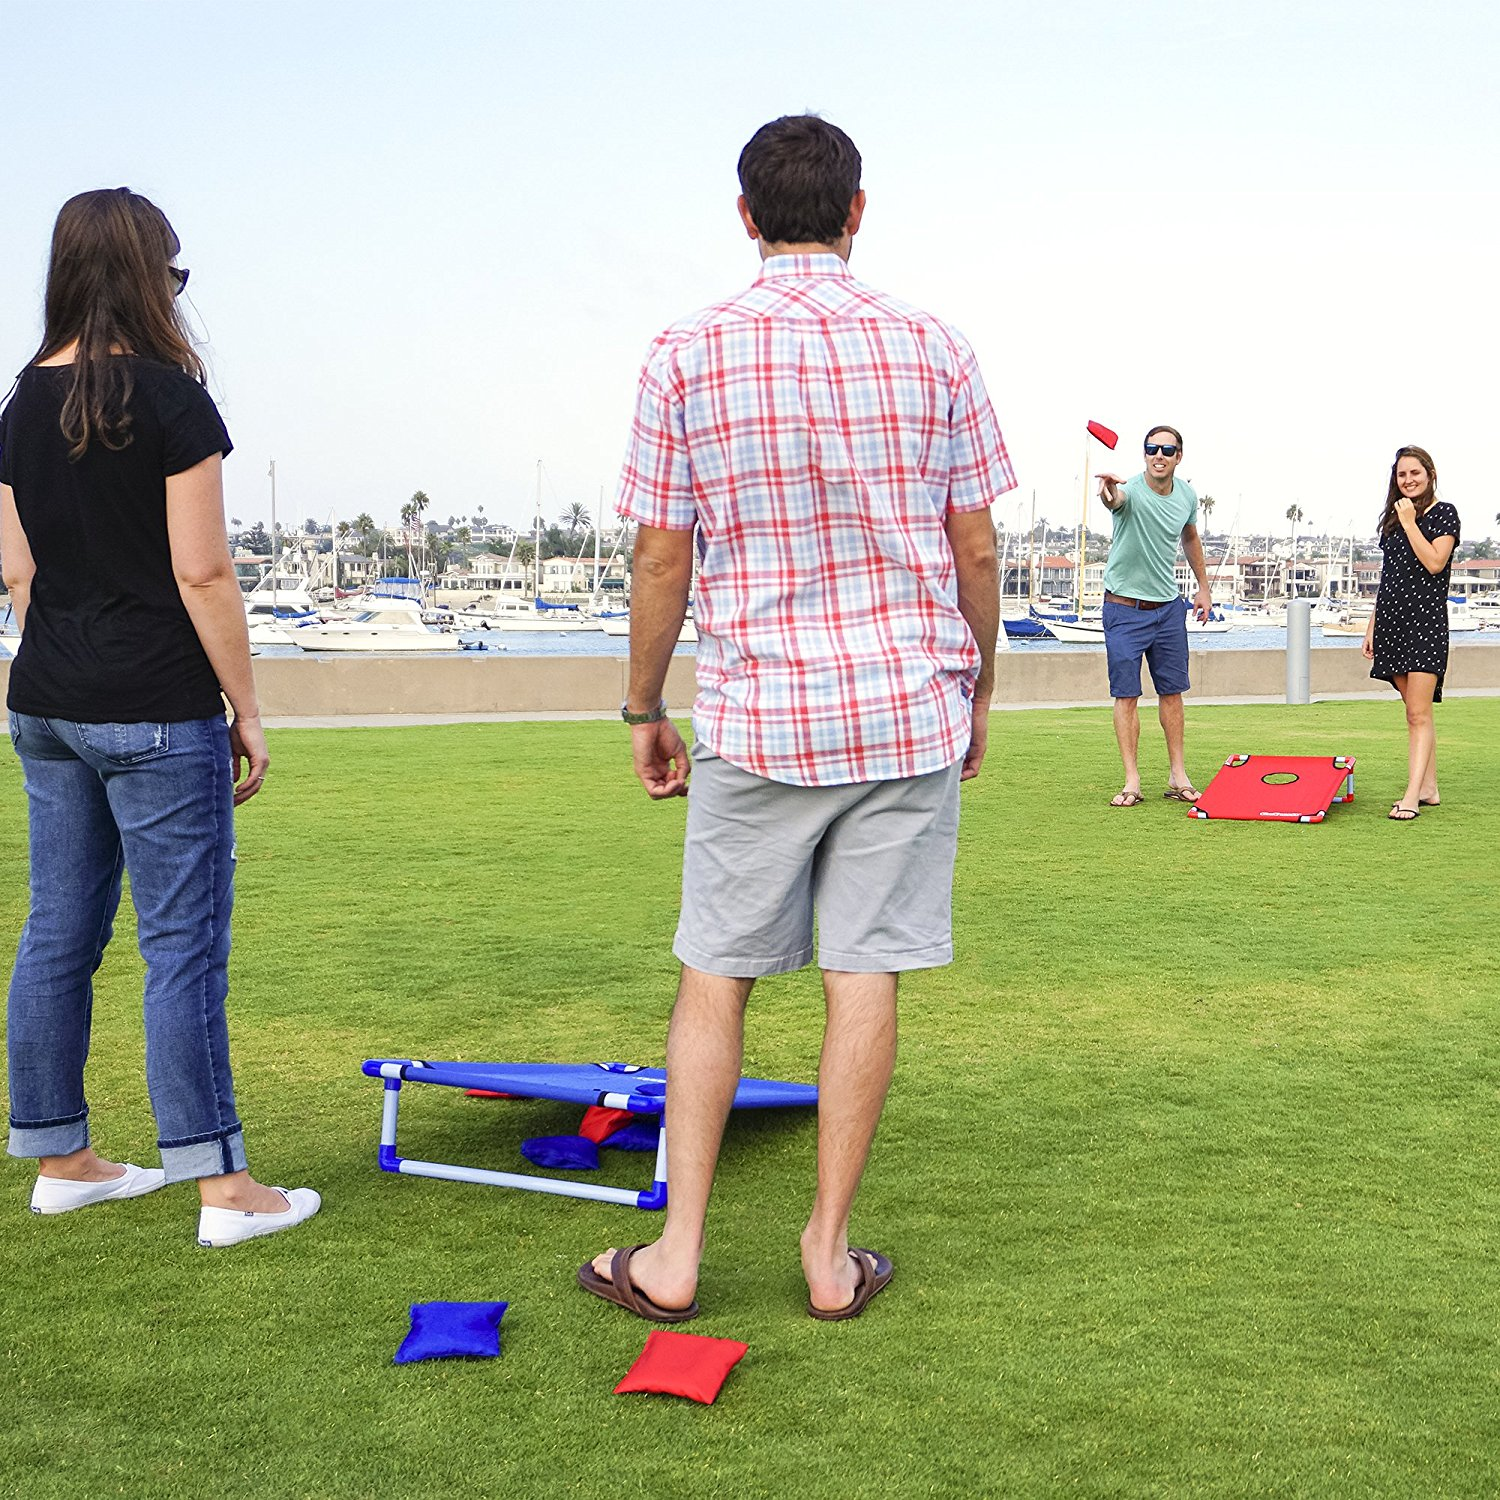 Corn-hole-game-for-adults